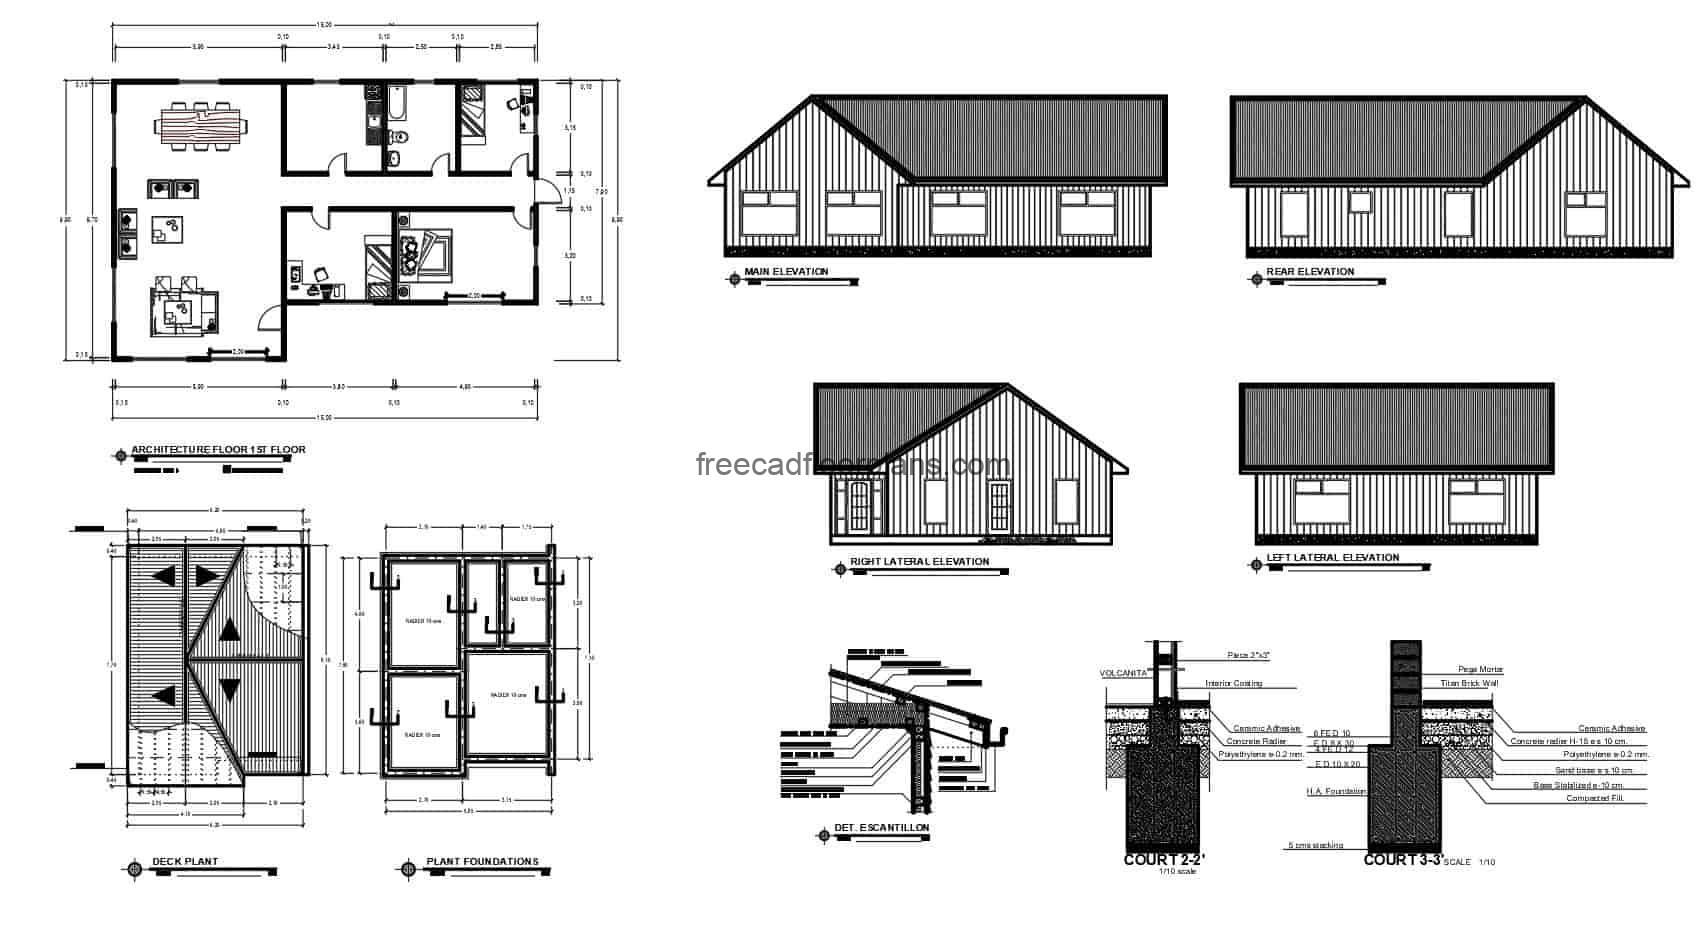 Simple one level country house for free download, autocad files, architectural plan and elevations.